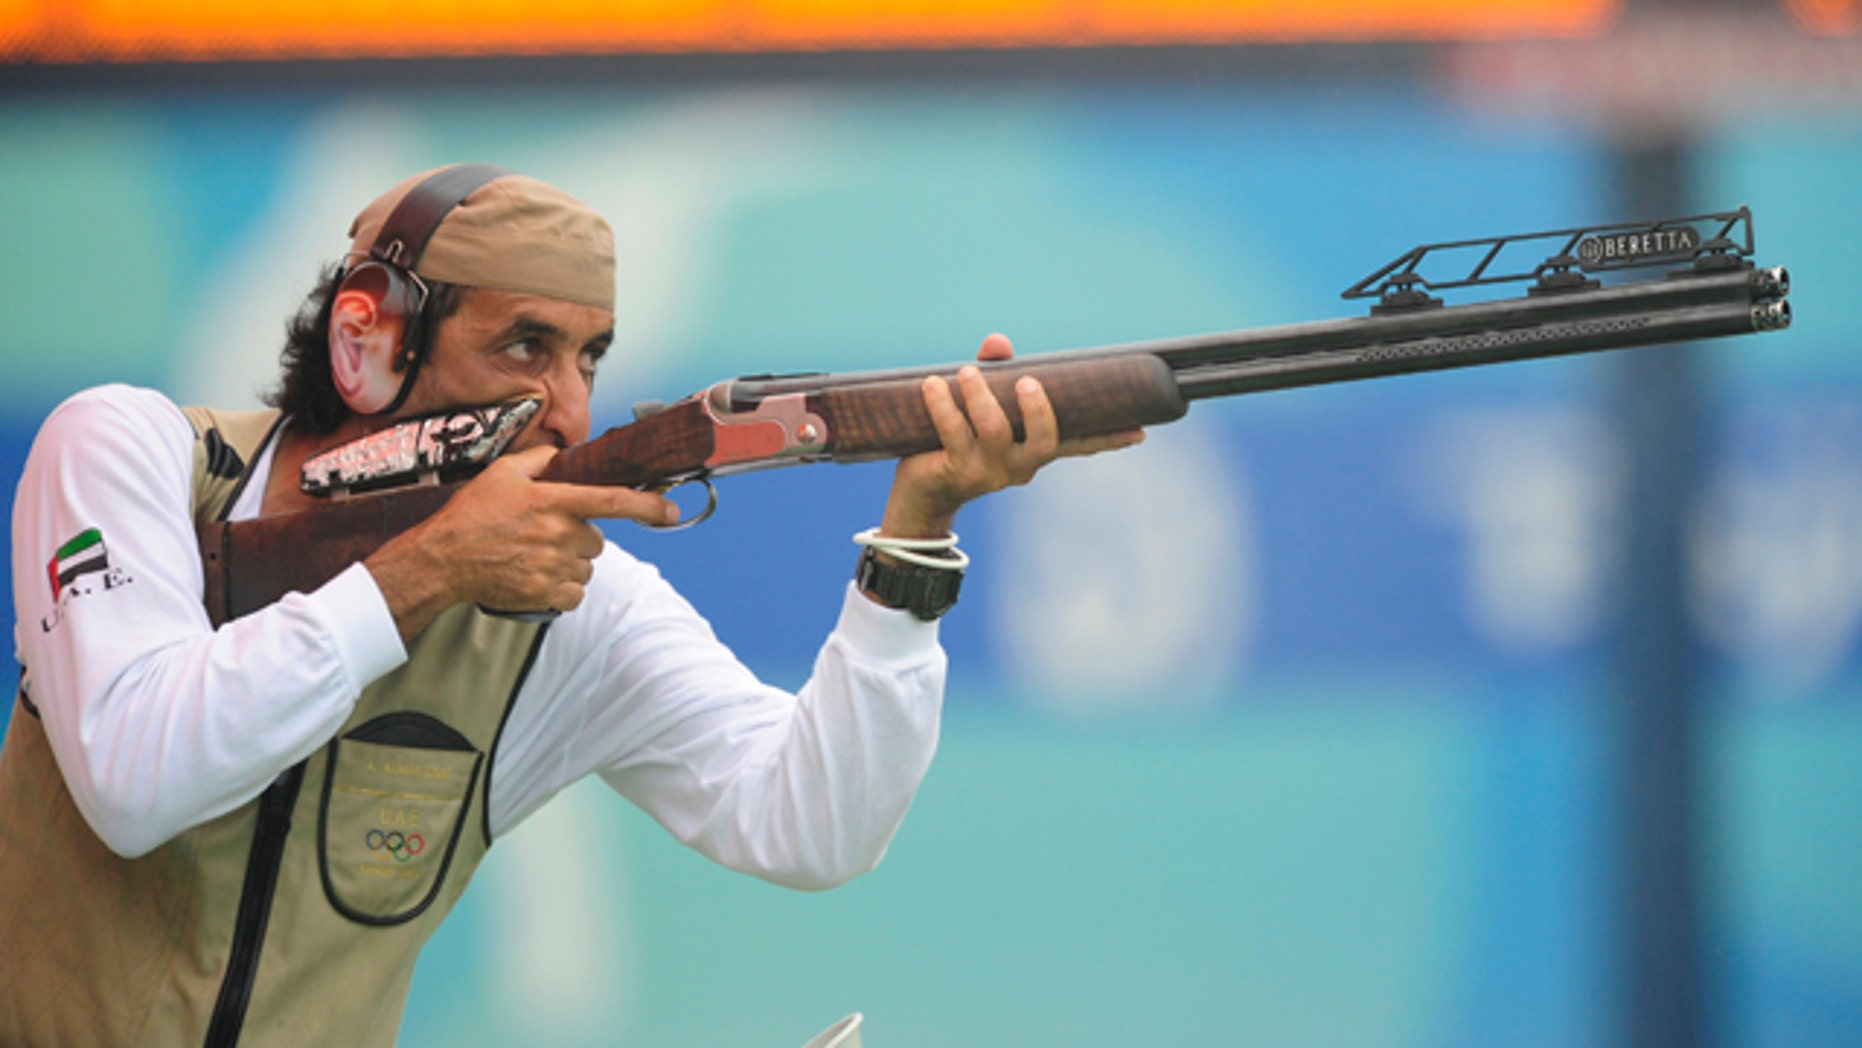 Ahmed Almaktoum of UAE shoots during the qualifying round of the men's trap competition at the Beijing 2008 Olympic Games August 10, 2008.